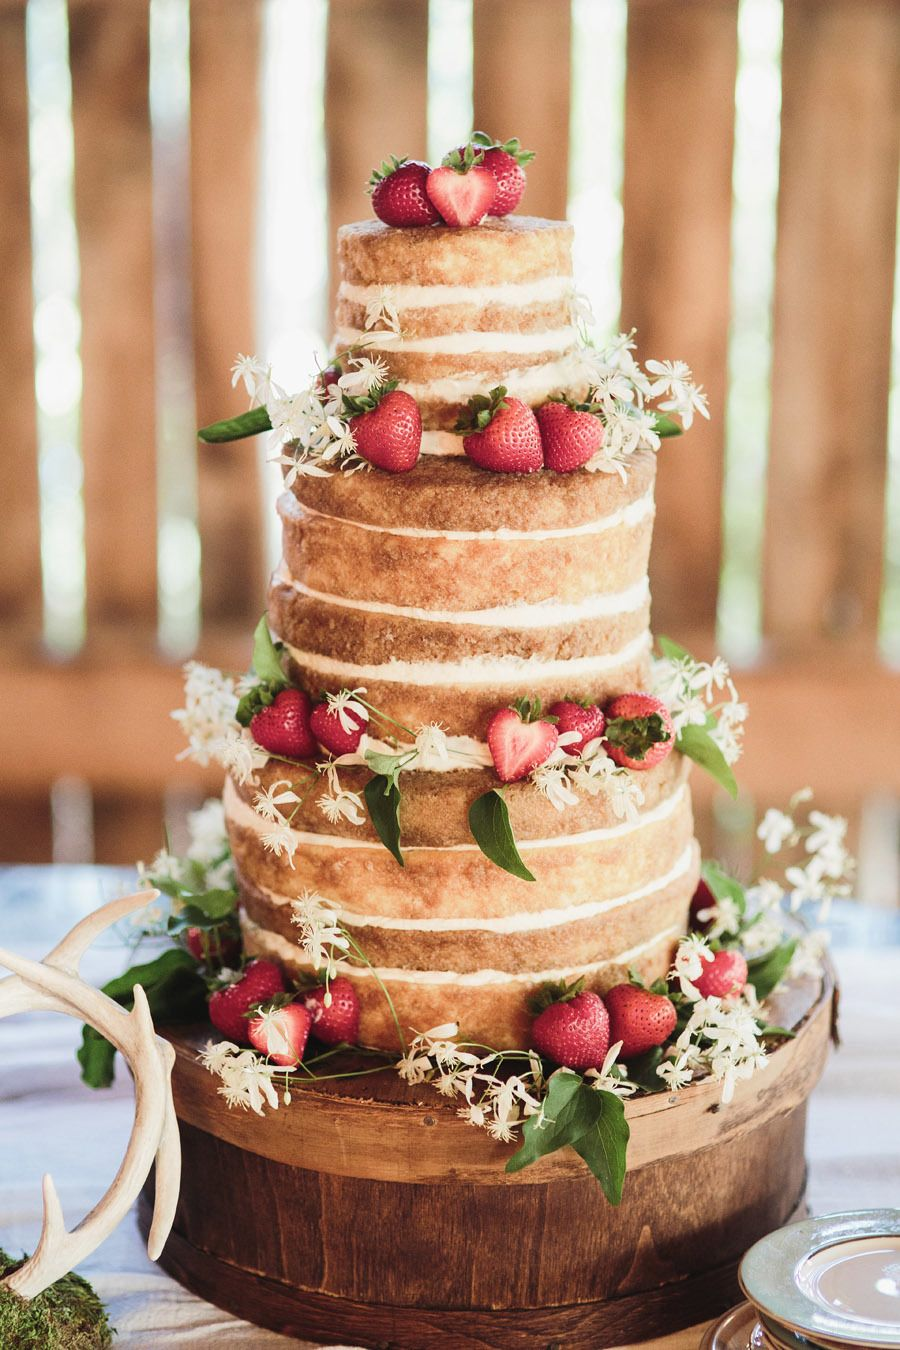 10 Sweet and Stunning Summer Wedding Cakes forecasting